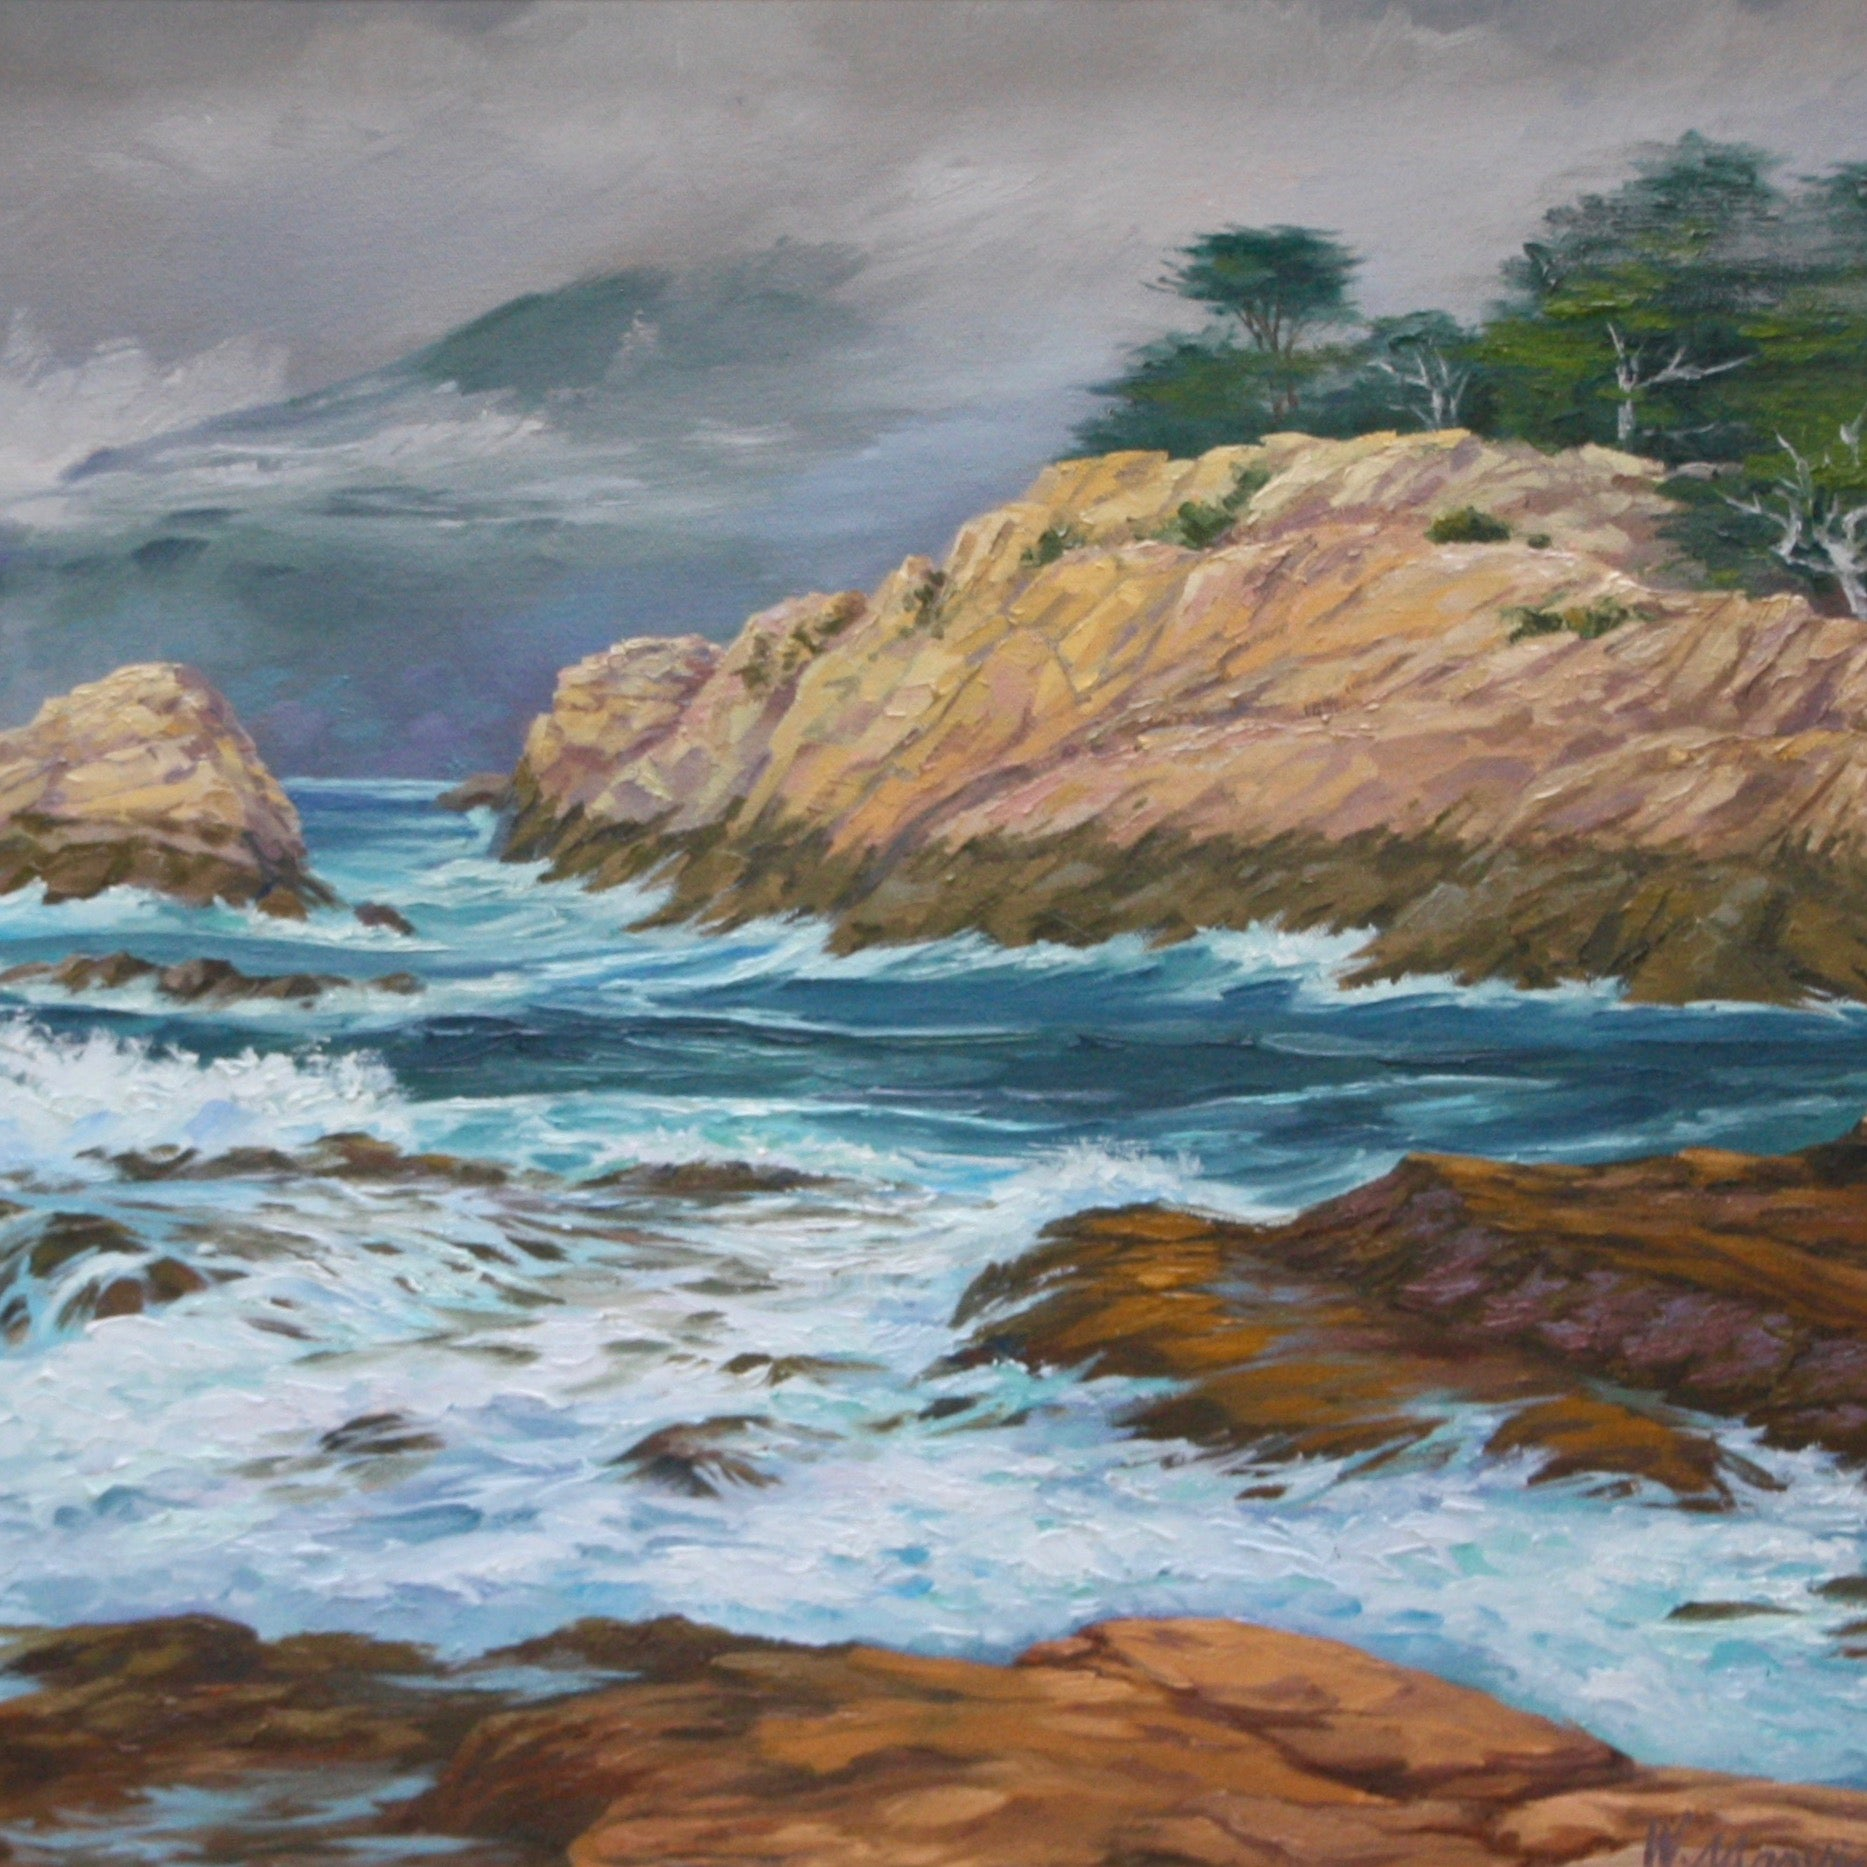 """Misty Day at Point Lobos"" by William Marvin 